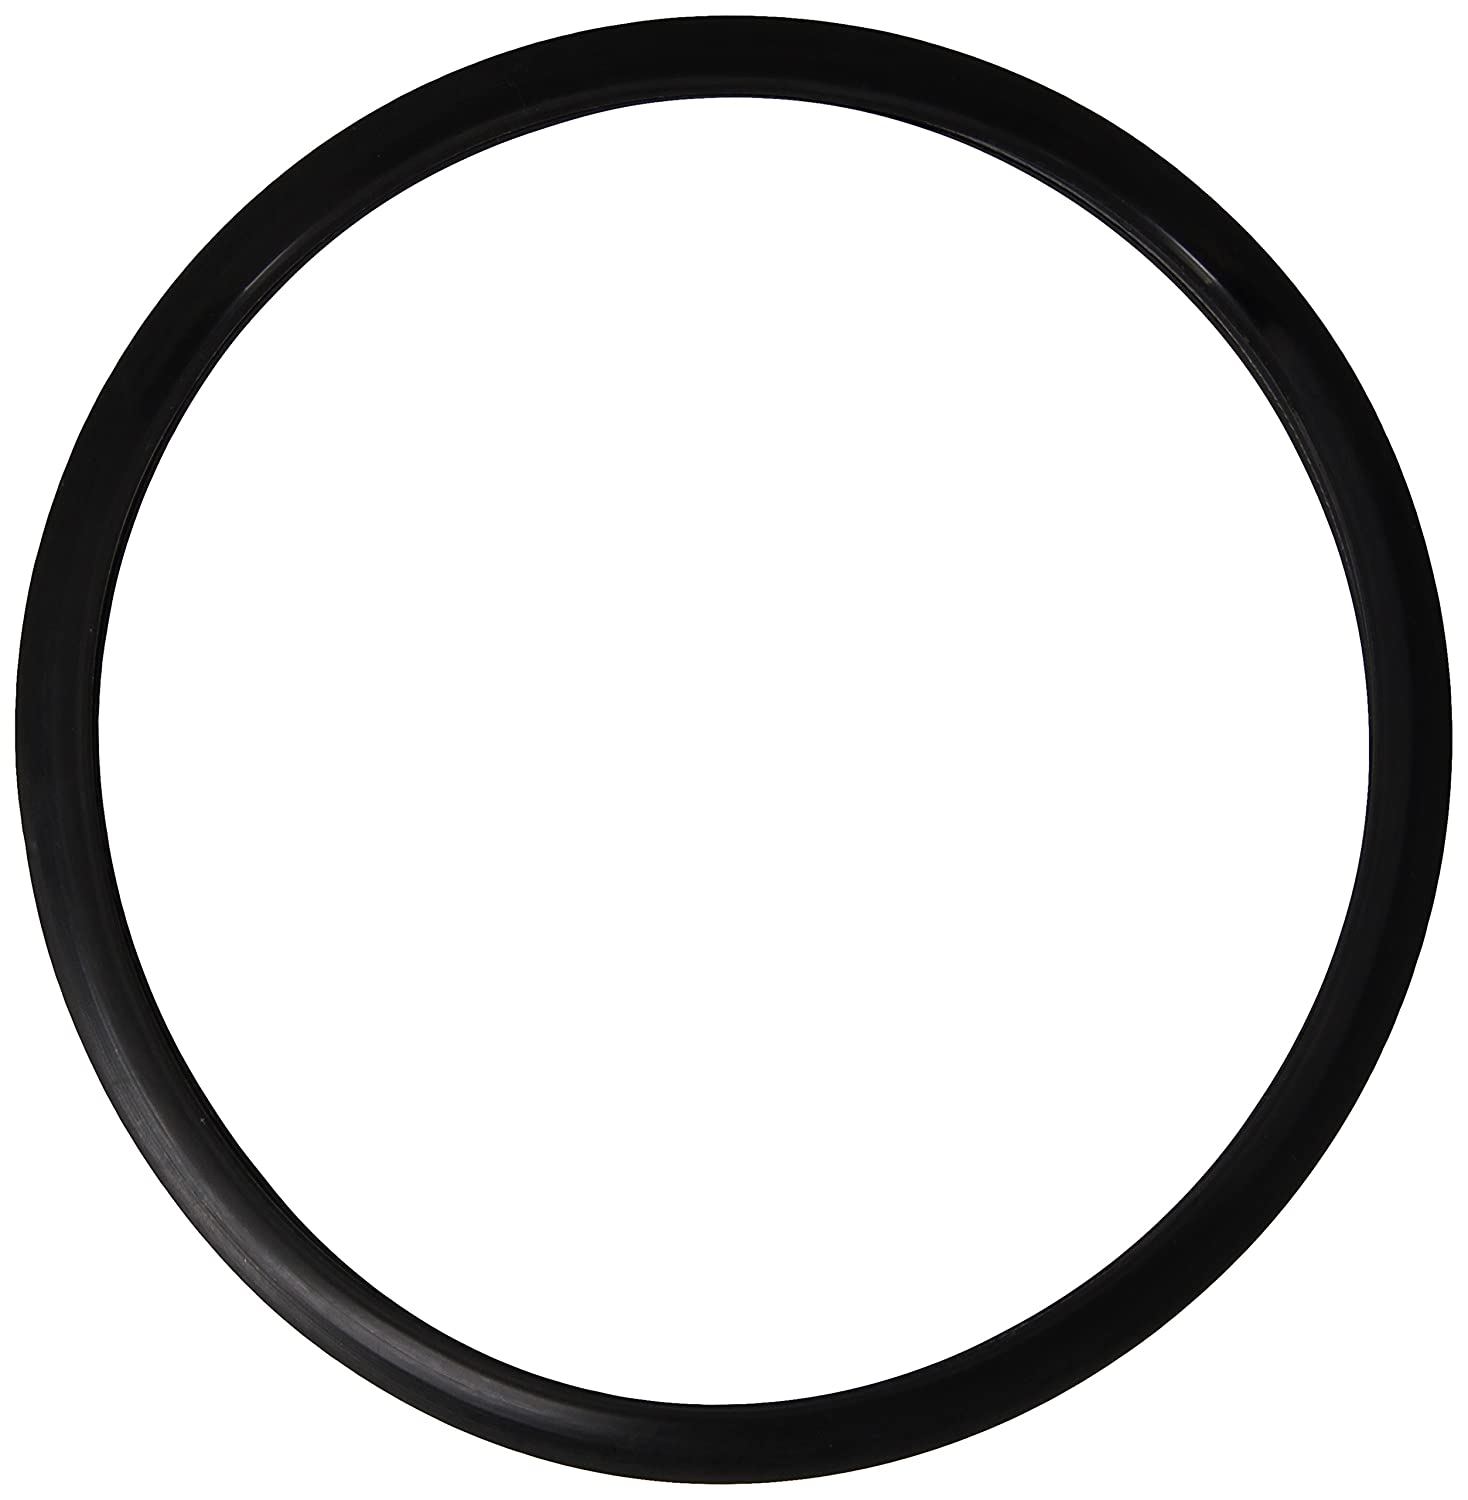 Prestige Junior Sealing Ring Gasket for 5.5/6.5-Liter, Junior Pan Popular & Popular Plus and 4.5/5/7-Liter Deluxe & Deluxe Plus Pressure Cookers